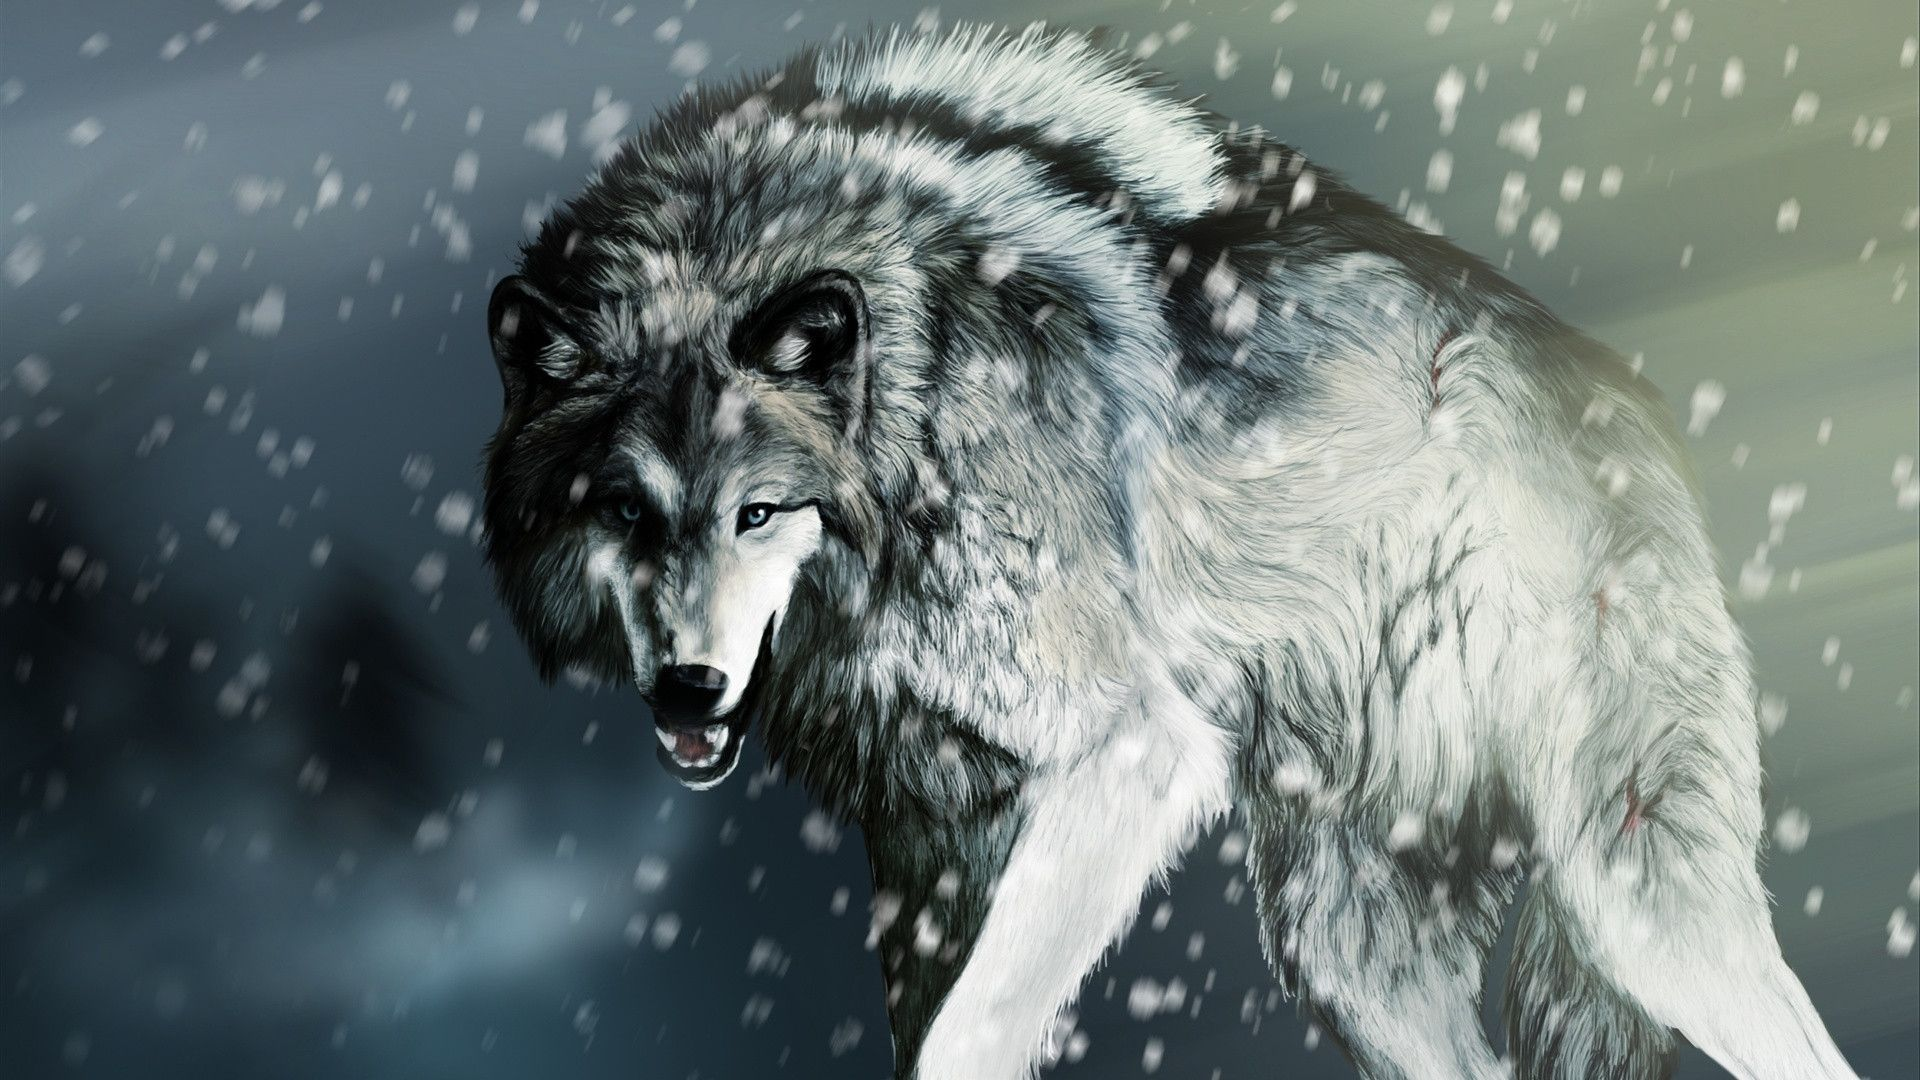 Epic Wolf Wallpapers Top Free Epic Wolf Backgrounds Wallpaperaccess